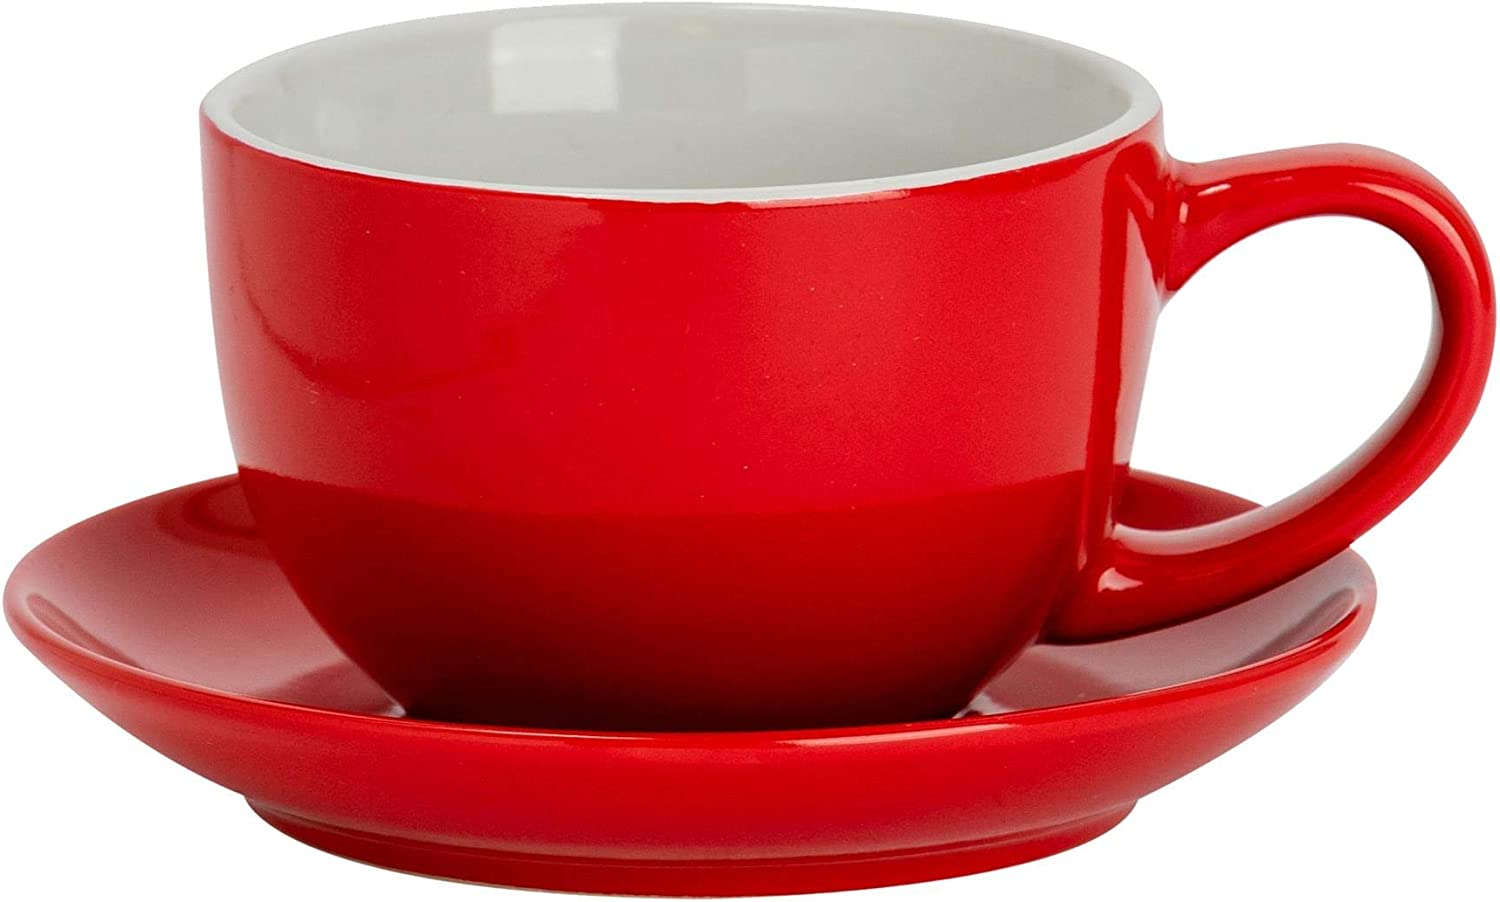 Argon Tableware 2 Piece Fixed price for sale Ranking TOP7 Coloured Cappuccino and Cup Saucer - Set